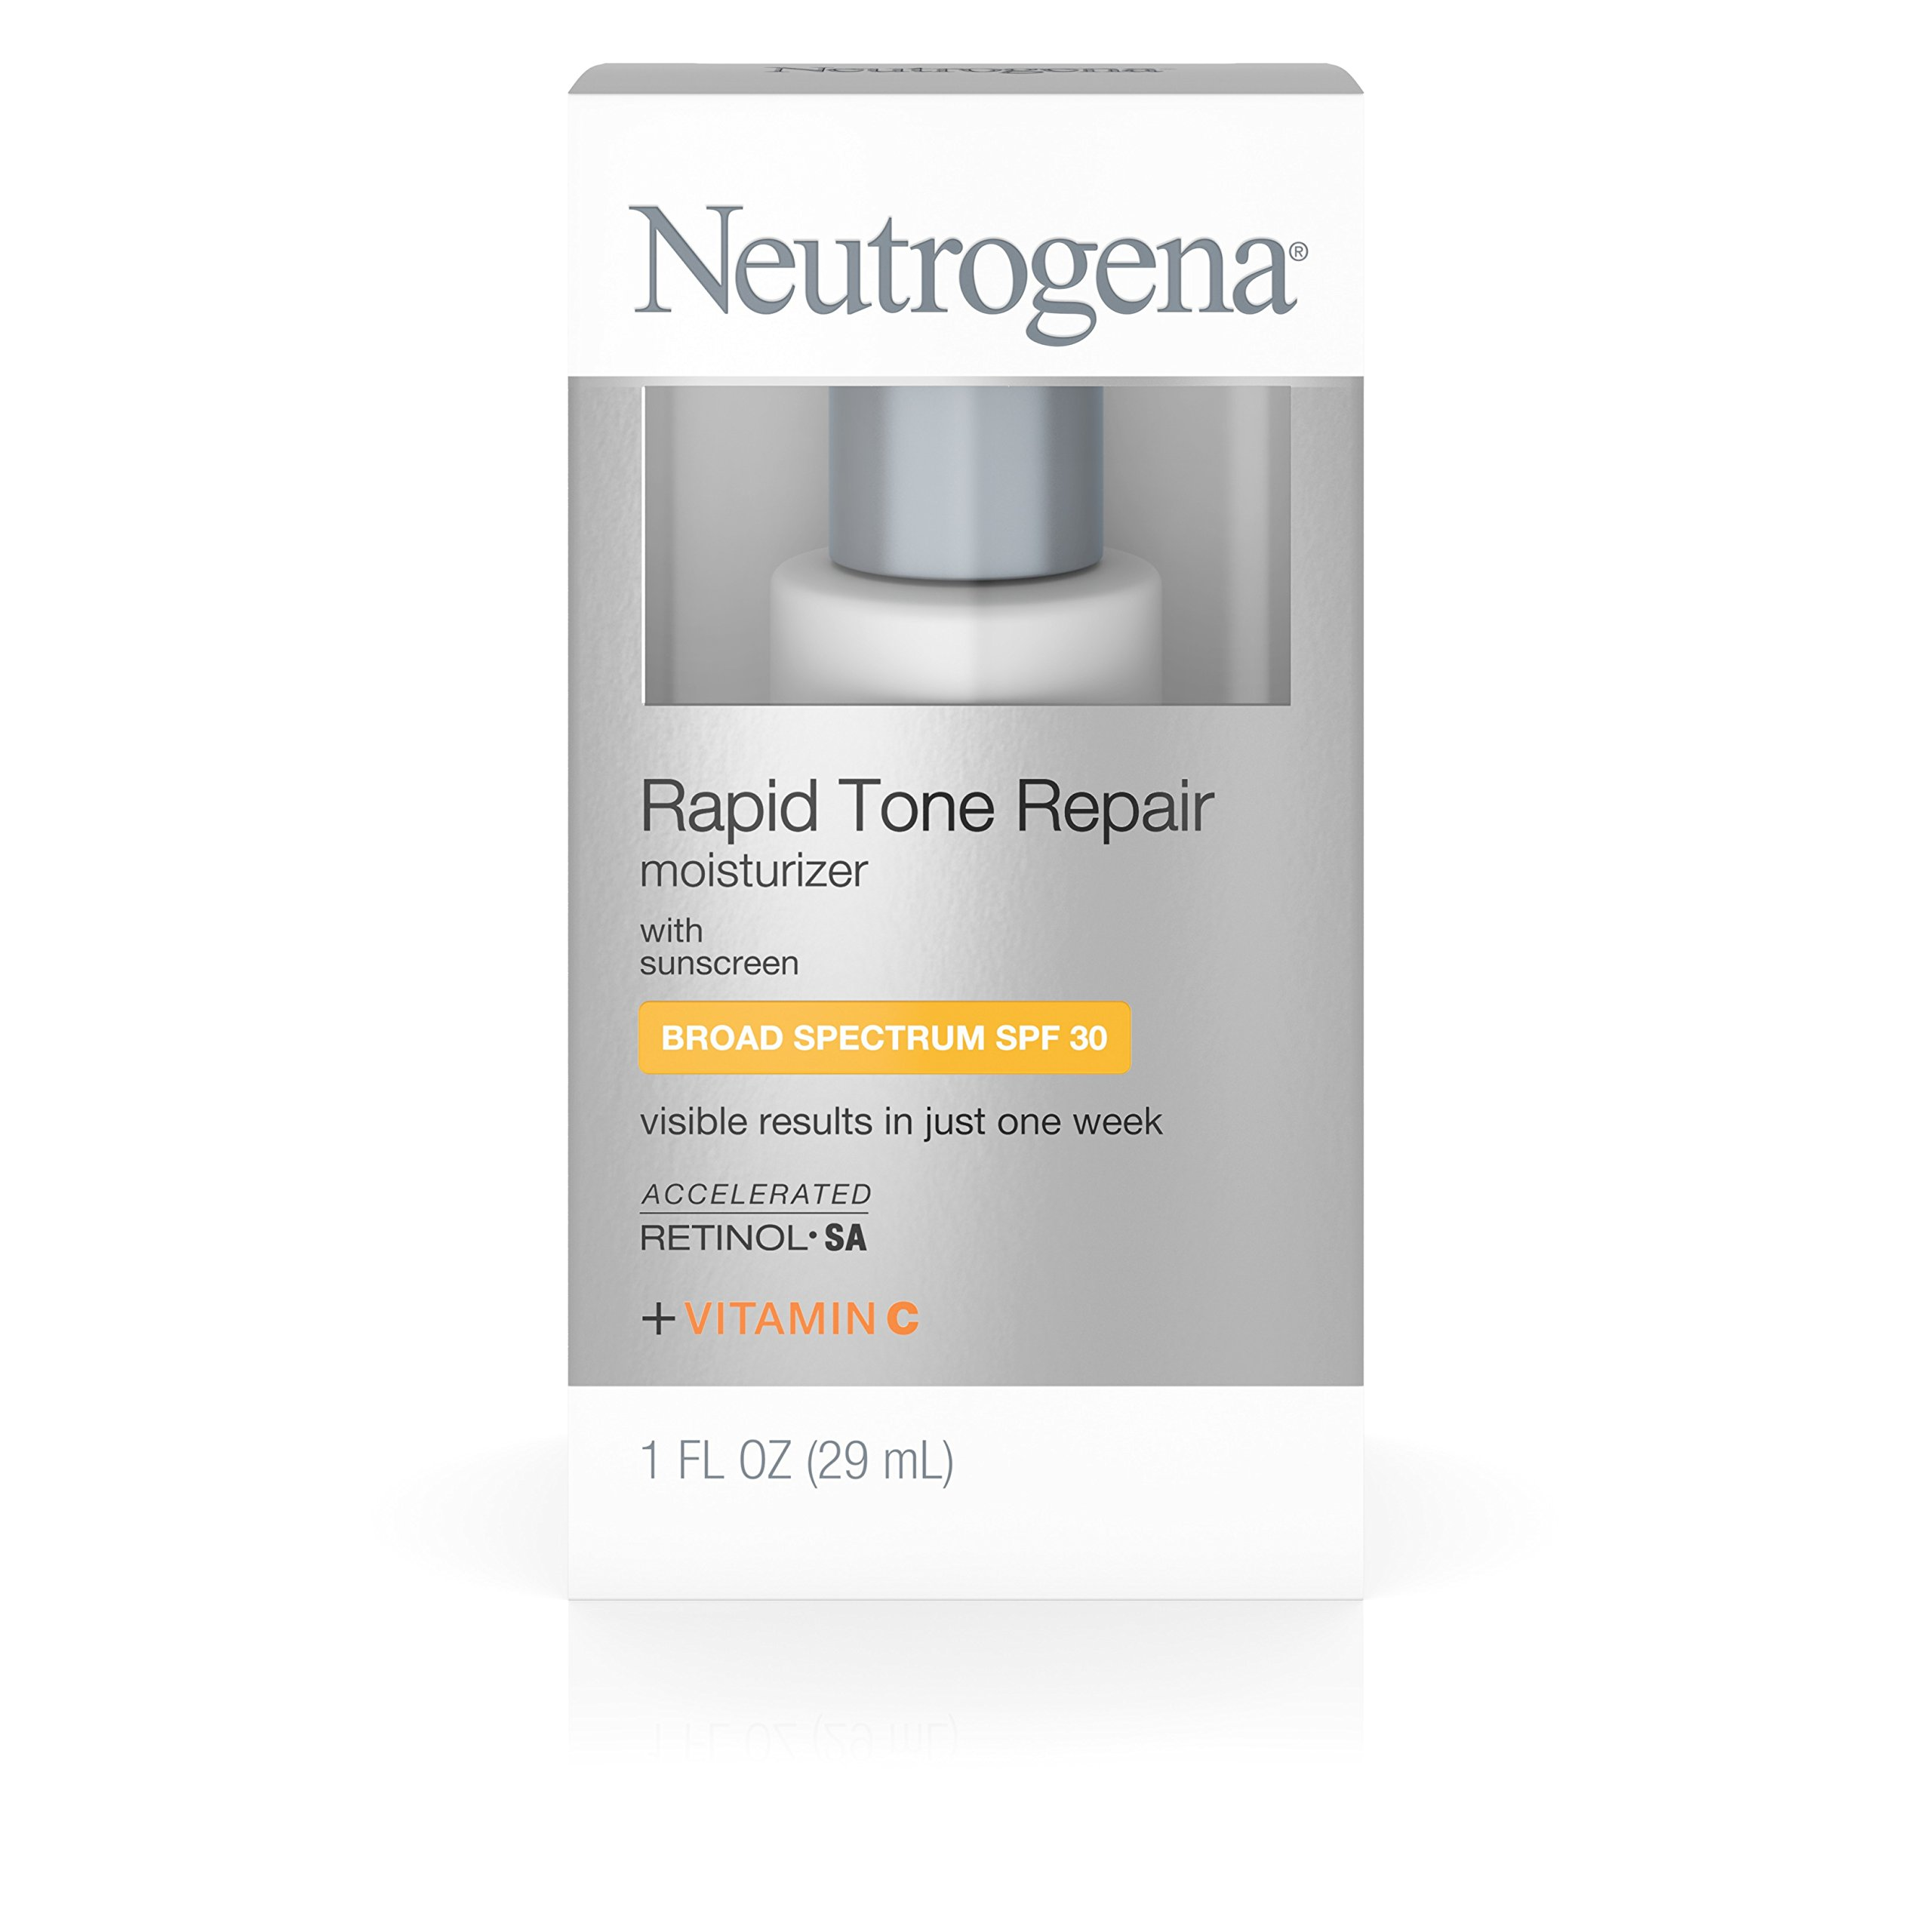 Neutrogena Rapid Tone Repair Moisturizer With Retinol, Broad Spectrum Spf 30 Sunscreen,  Travel Size 1 Fl. Oz.